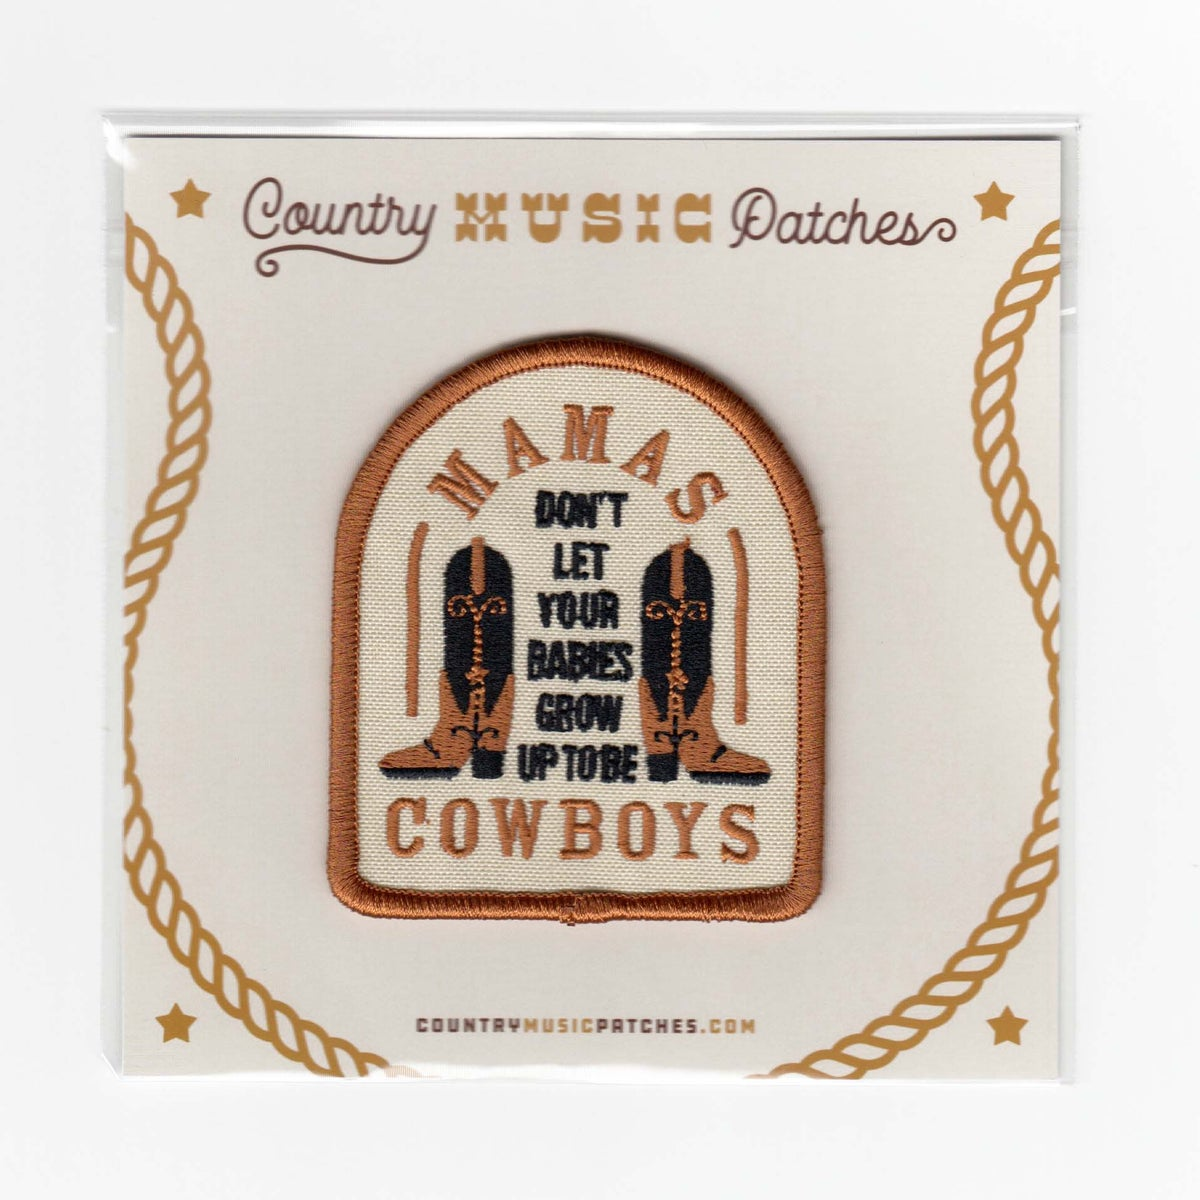 Image of Mamas, Don't Let Your Babies Grow Up To Be Cowboys Patch